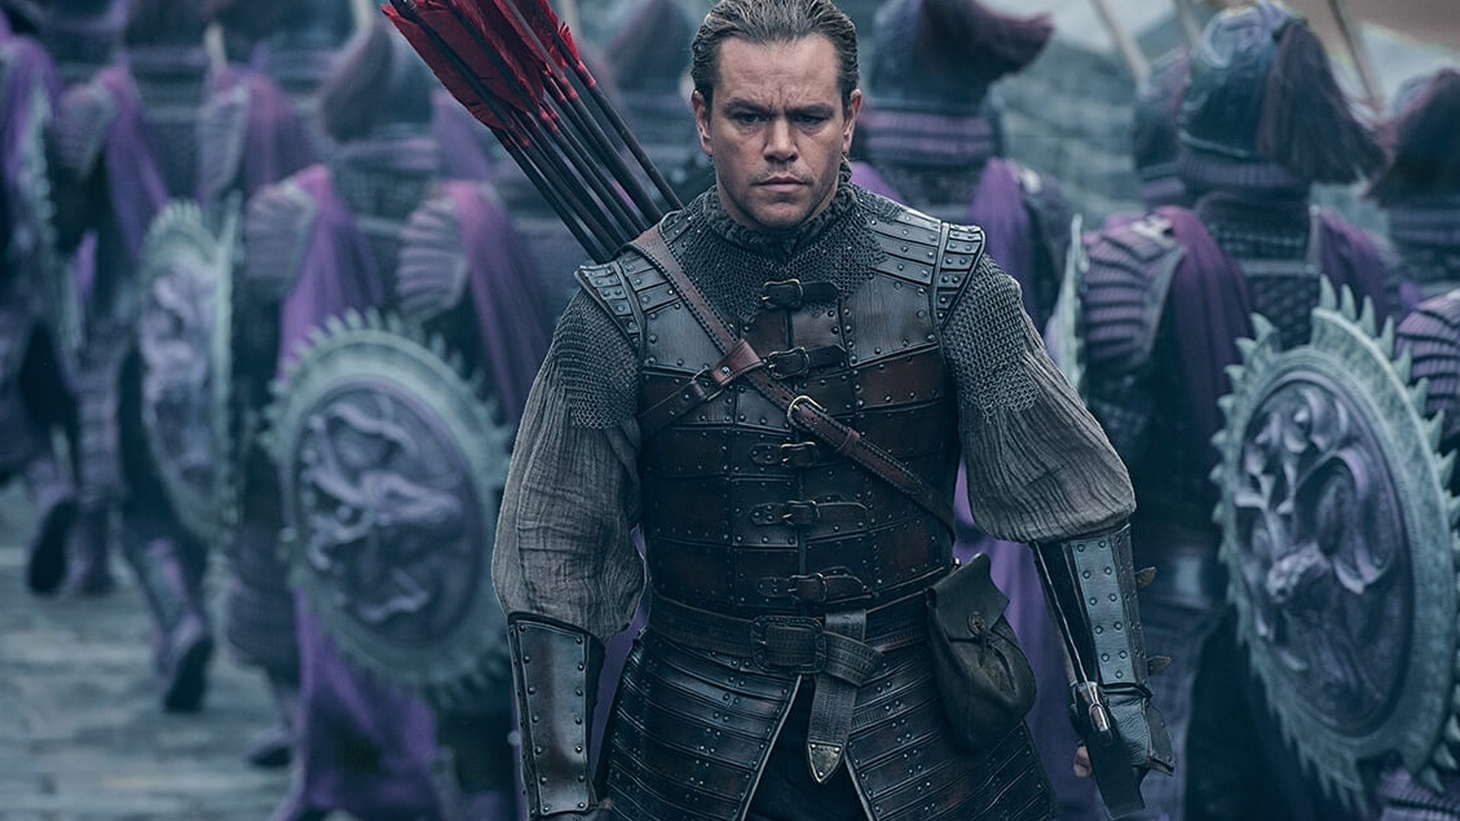 There is no lack of spectacular sequences in The Great Wall. It's the most expensive movie ever produced in China, with fancy weaponry that's meant to show how technologically advanced the Inner Kingdom was.